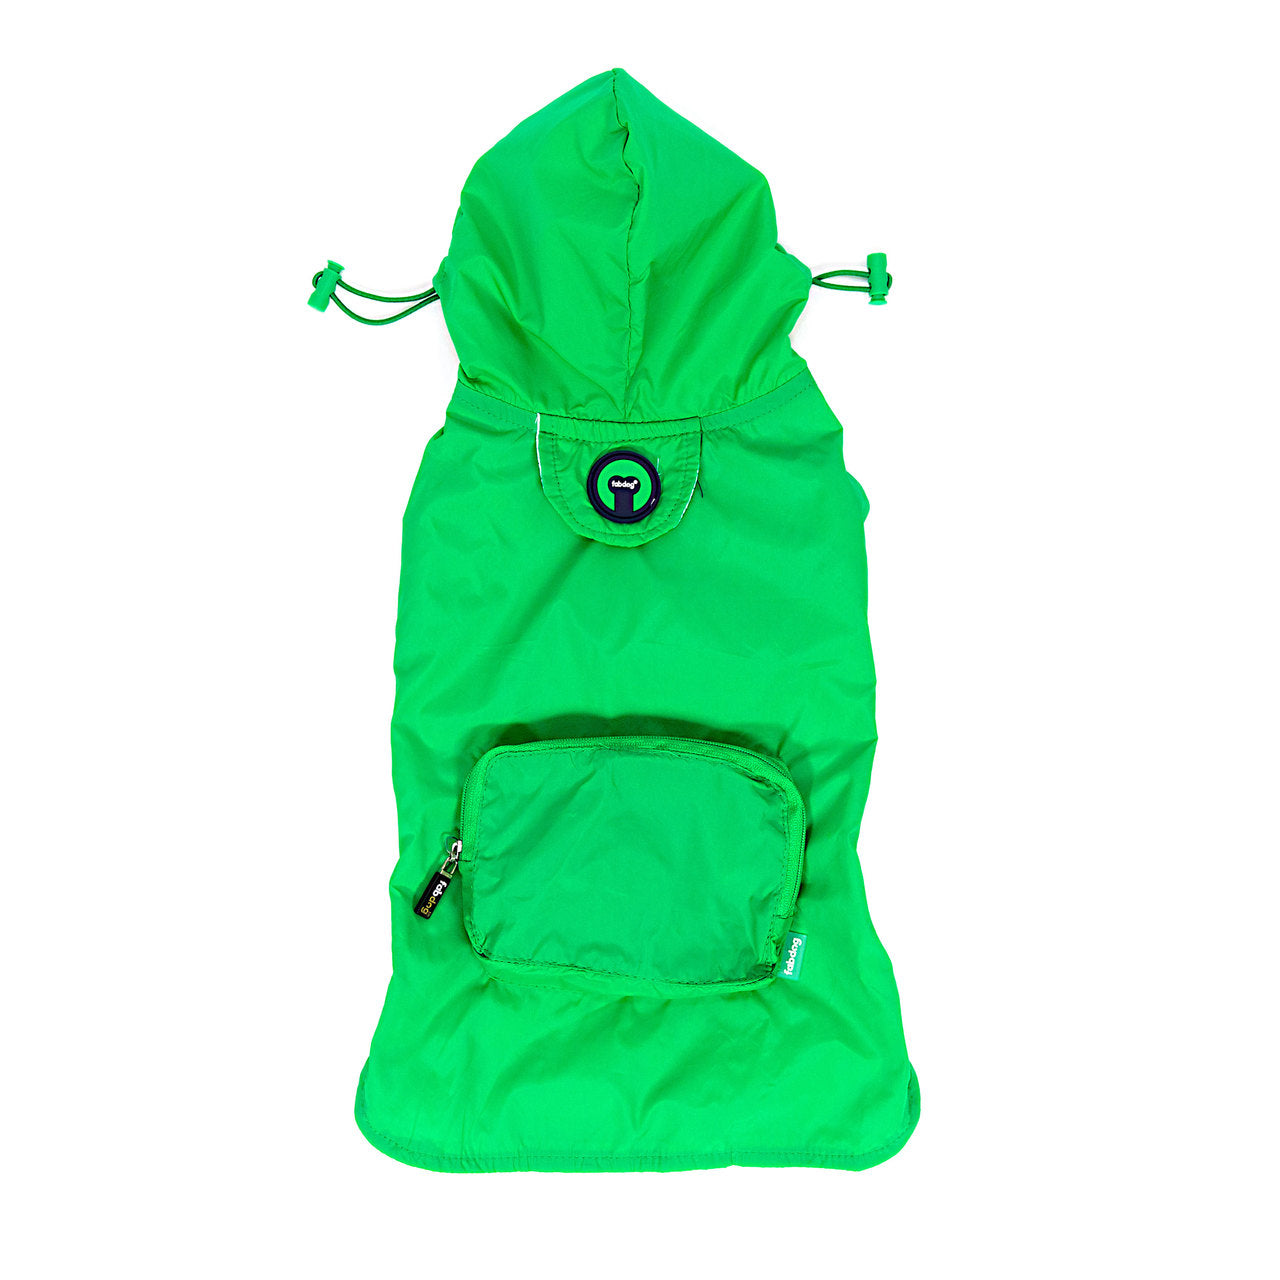 Green Packaway Raincoat